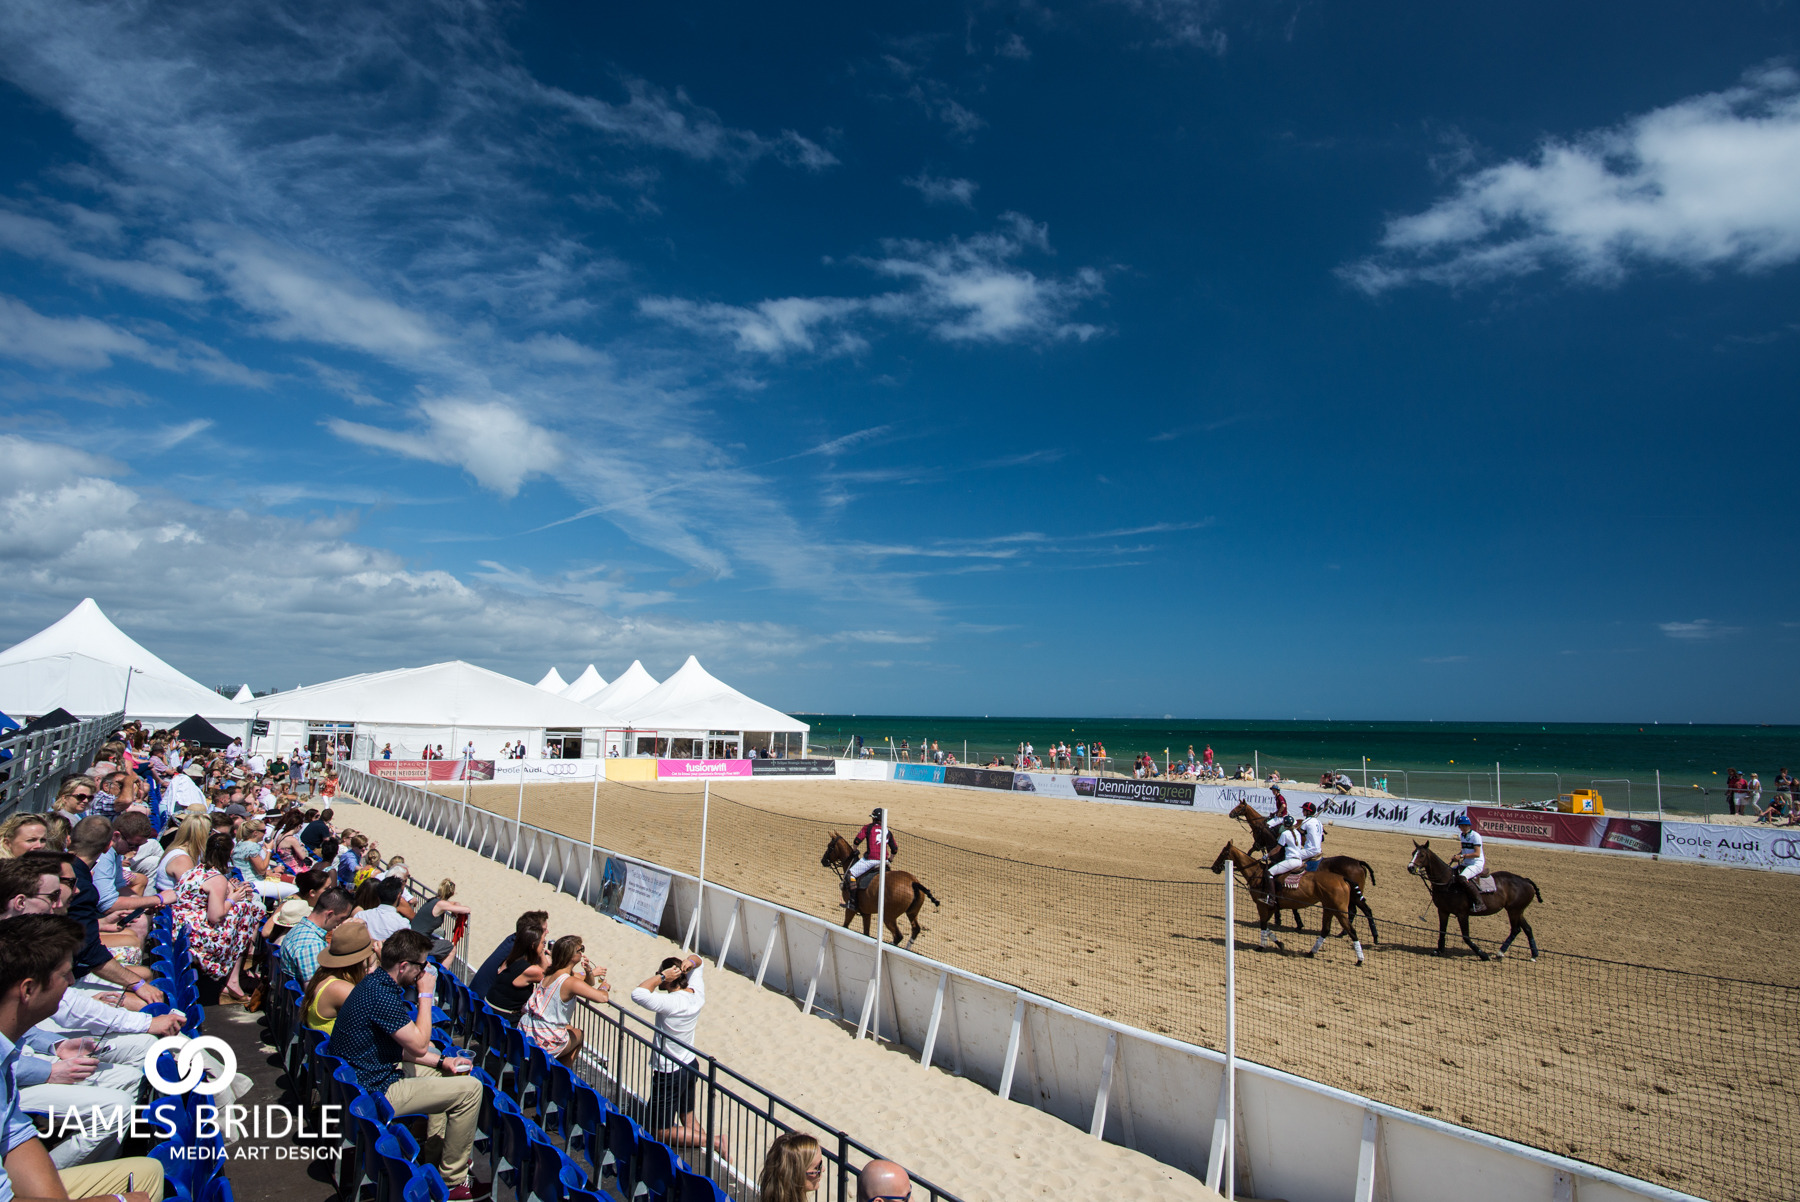 Sandbanks Beach, British Sand Polo Championship 2015